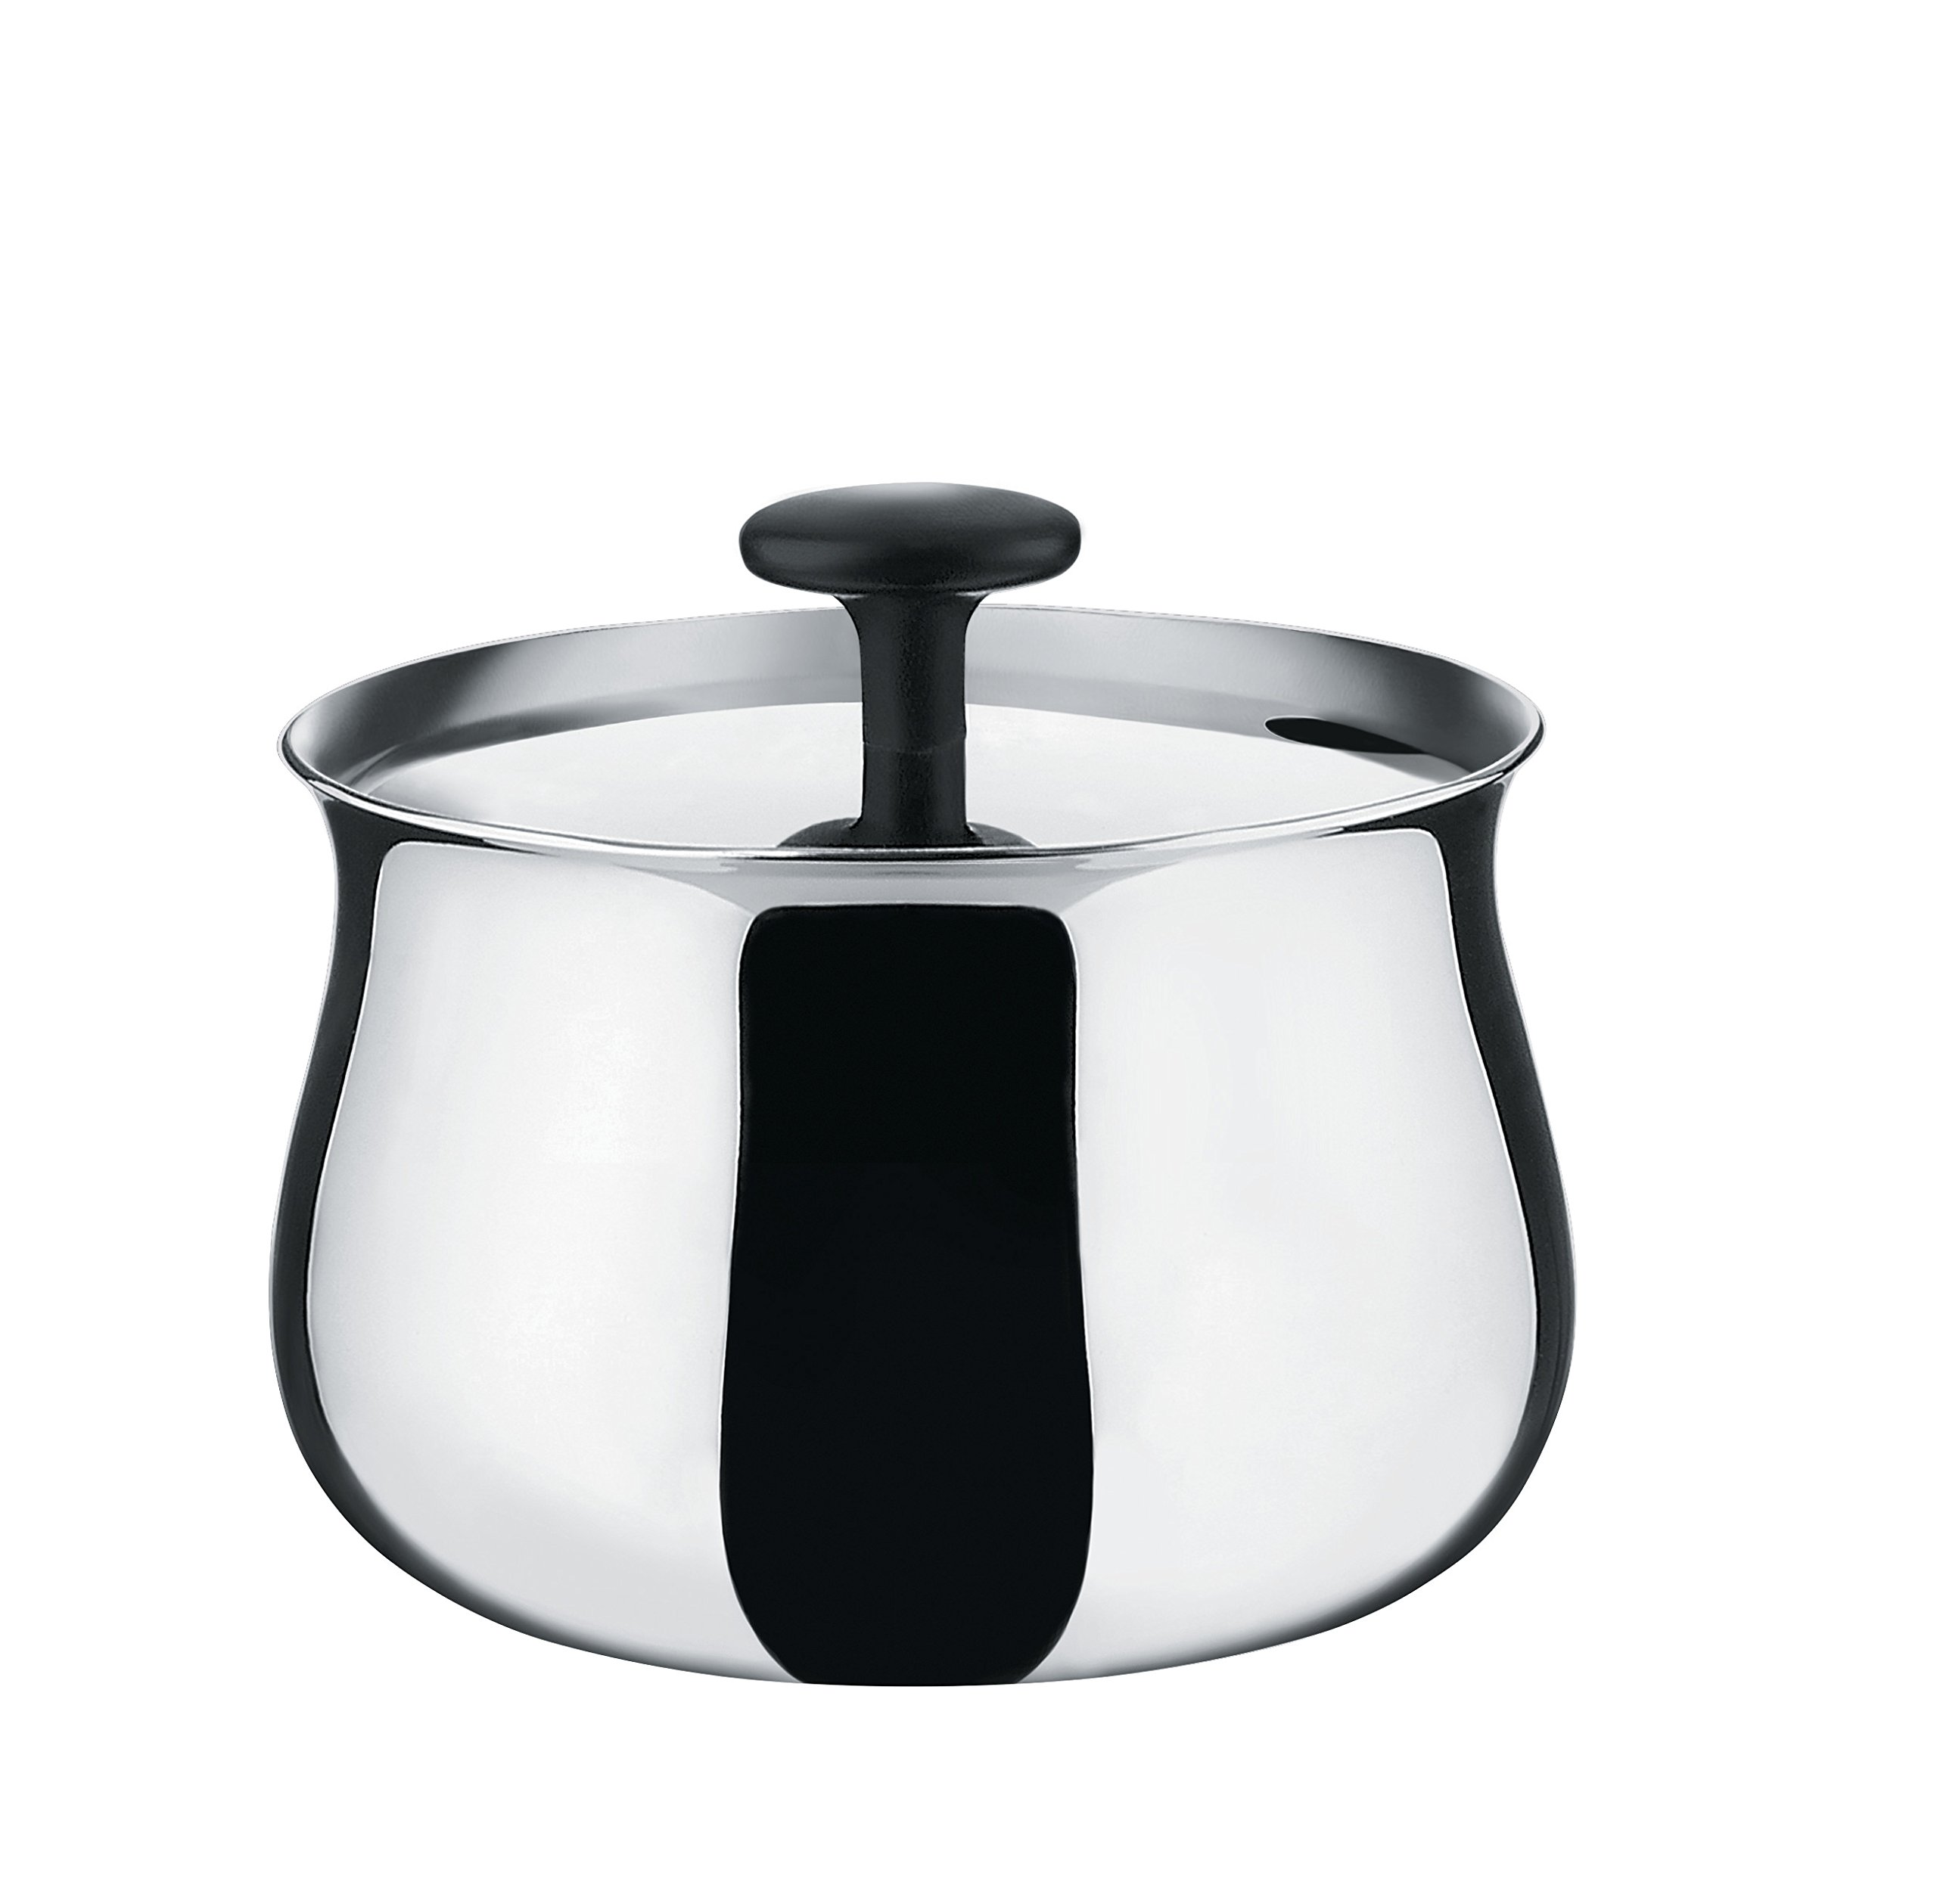 Alessi''Cha'' Sugar Bowl in 18/10 Stainless Steel Mirror Polished, Silver